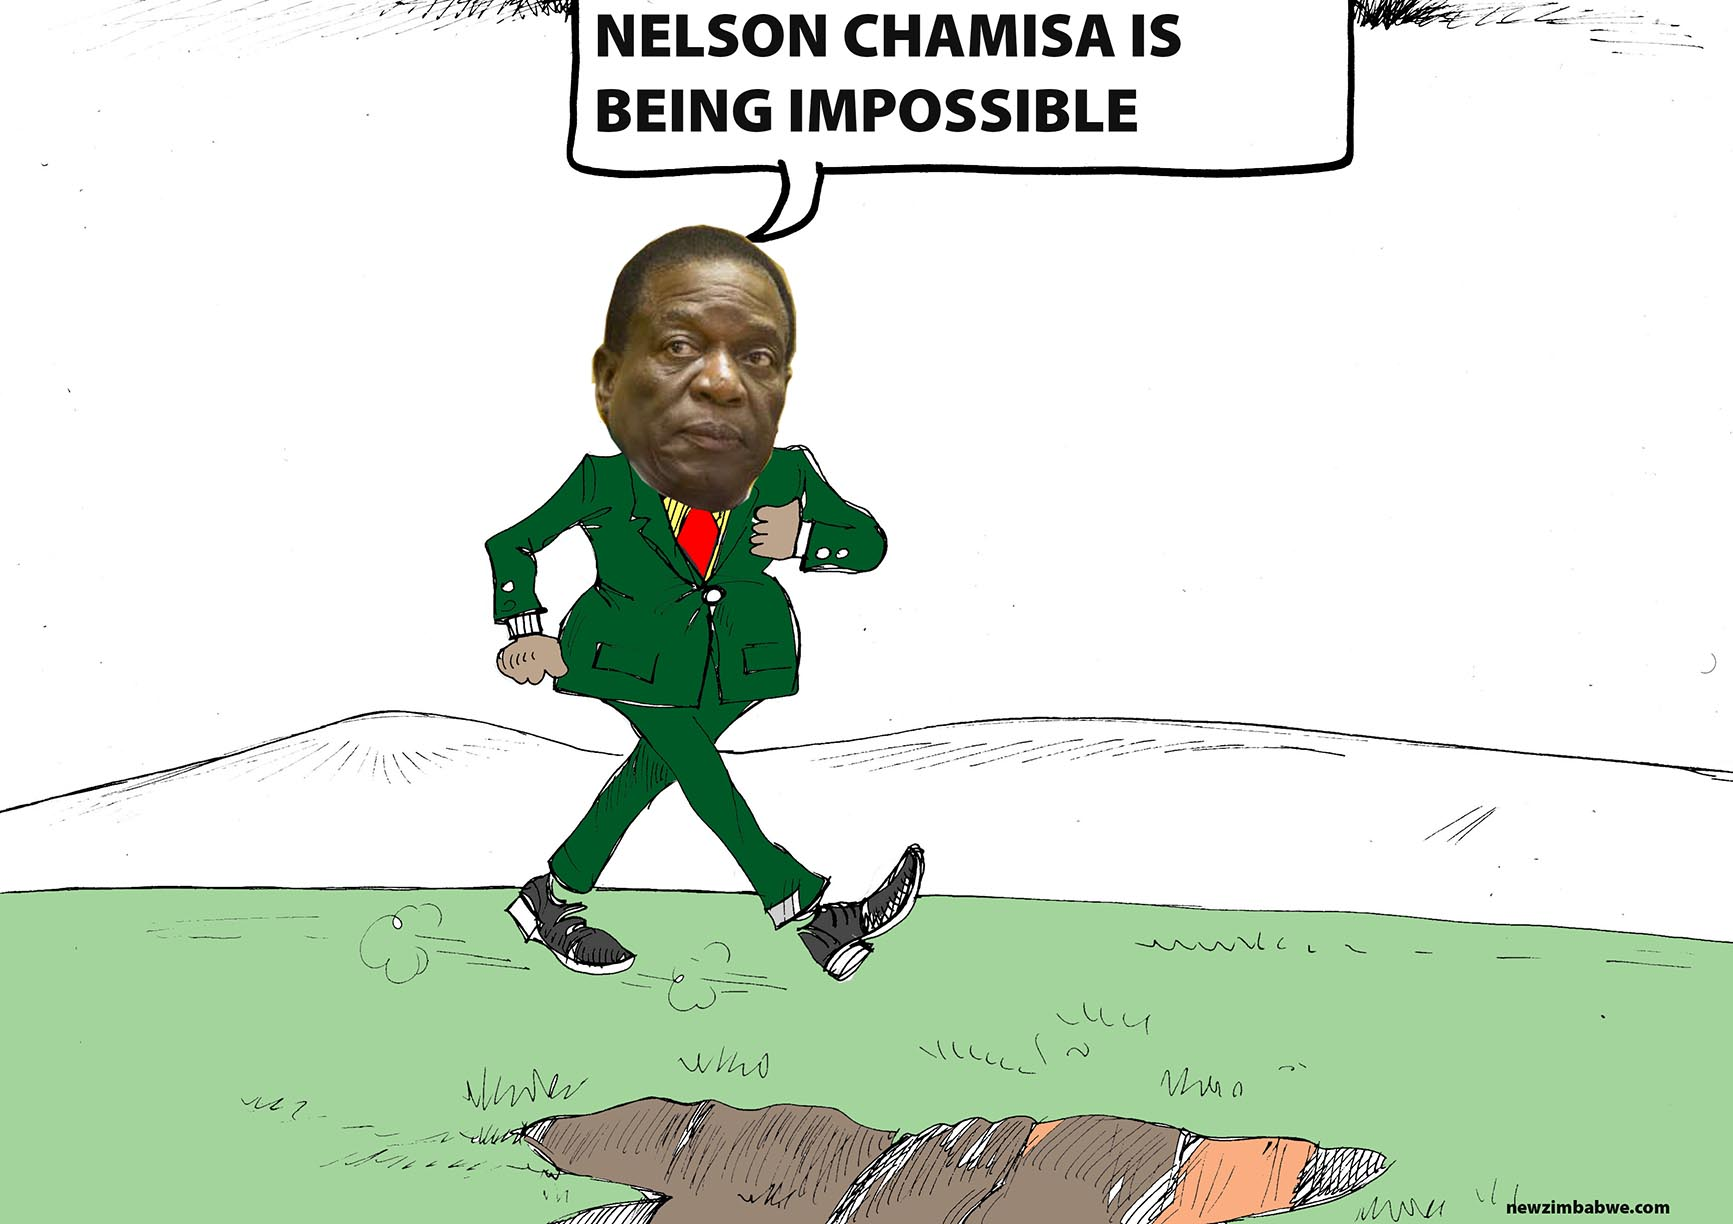 Chamisa is being impossible